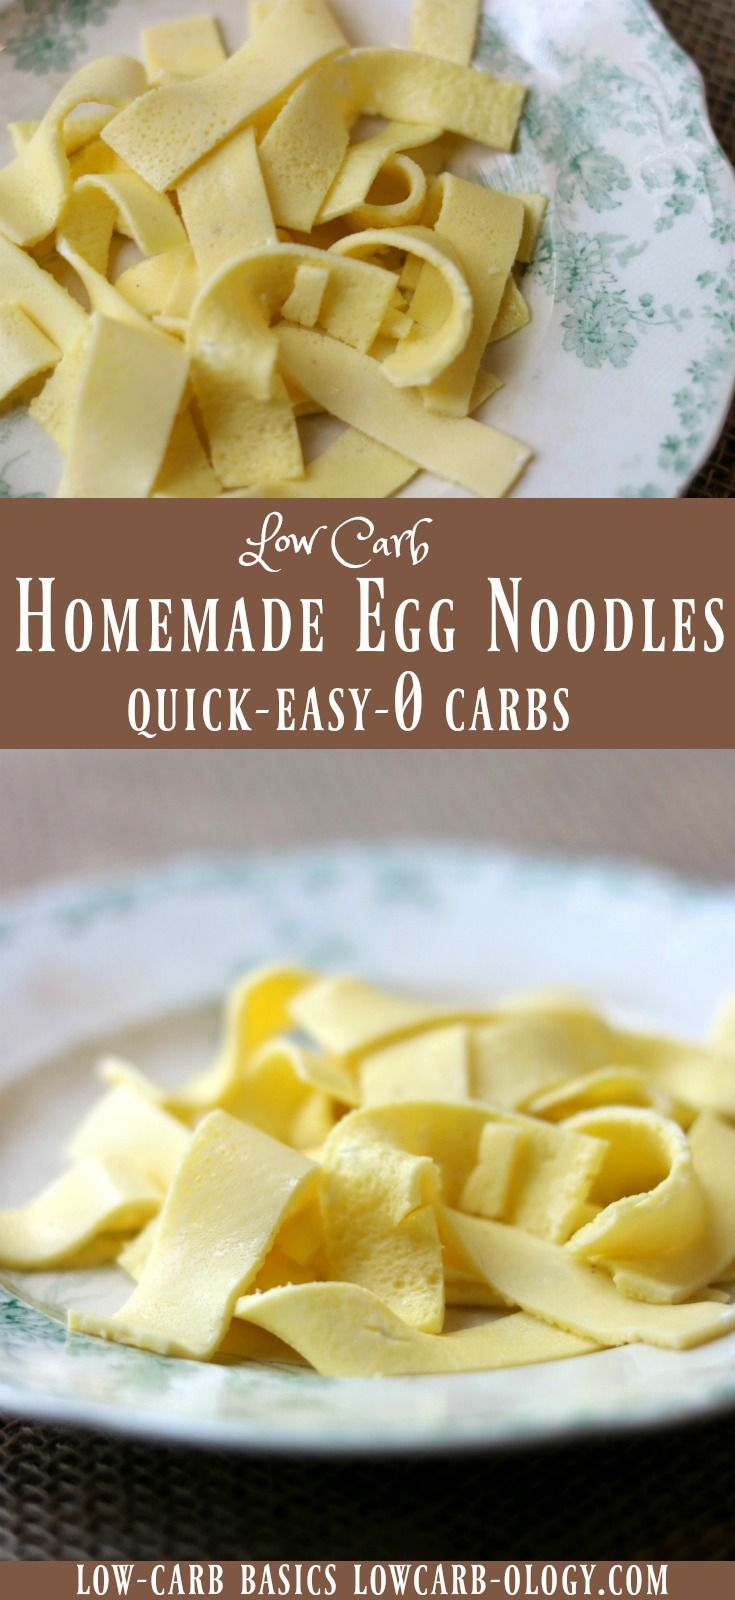 Easy low carb egg noodles - homemade pasta with 0 carbs that you can make in less than 10 minutes. Love this stuff! From Lowcarb-ology.com